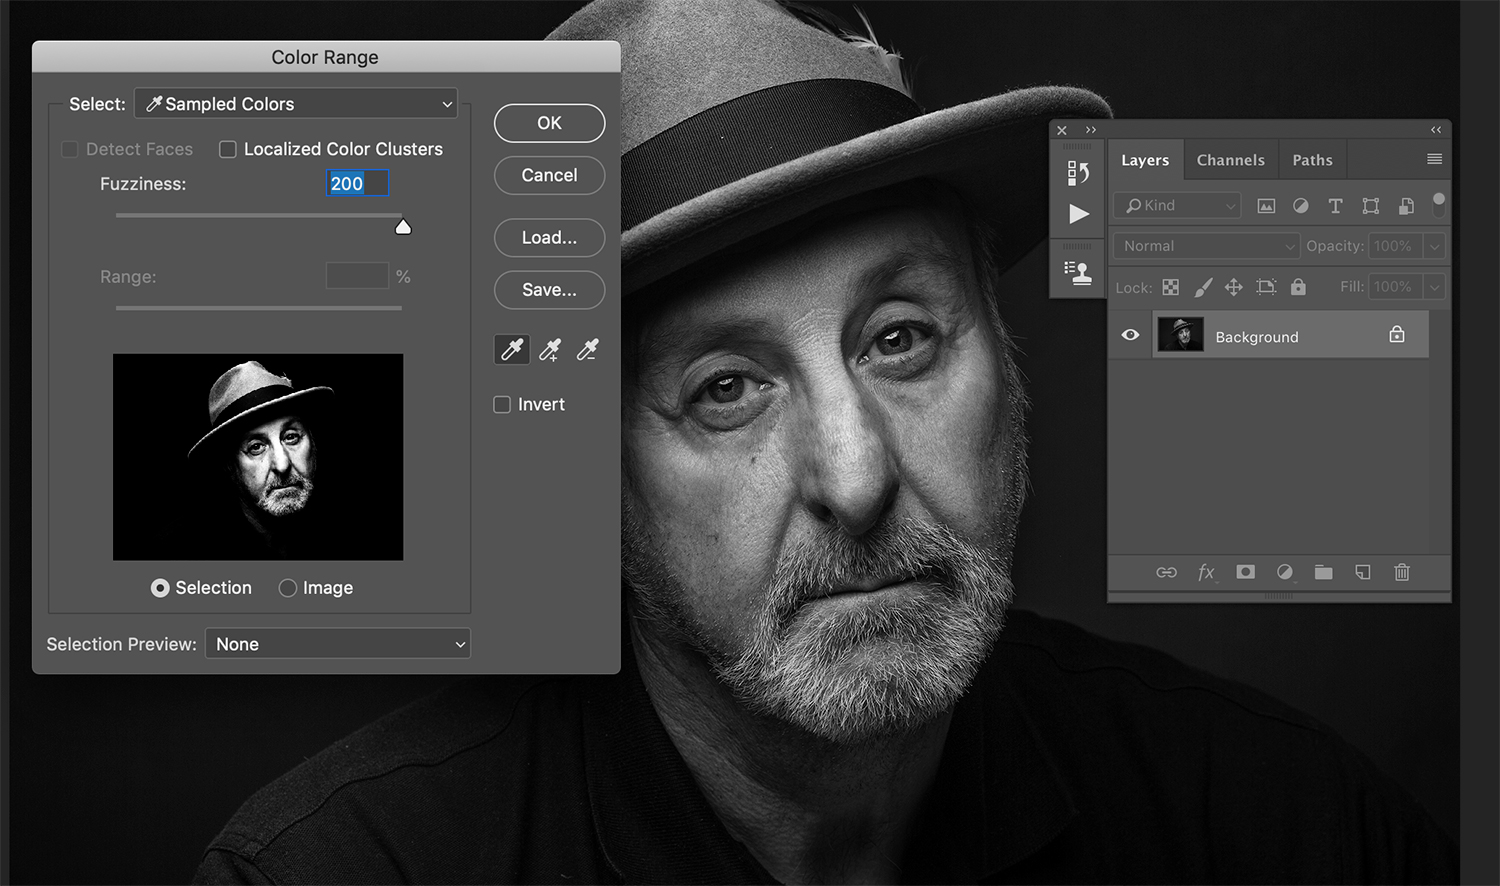 Select color range tool in processing black and white images.